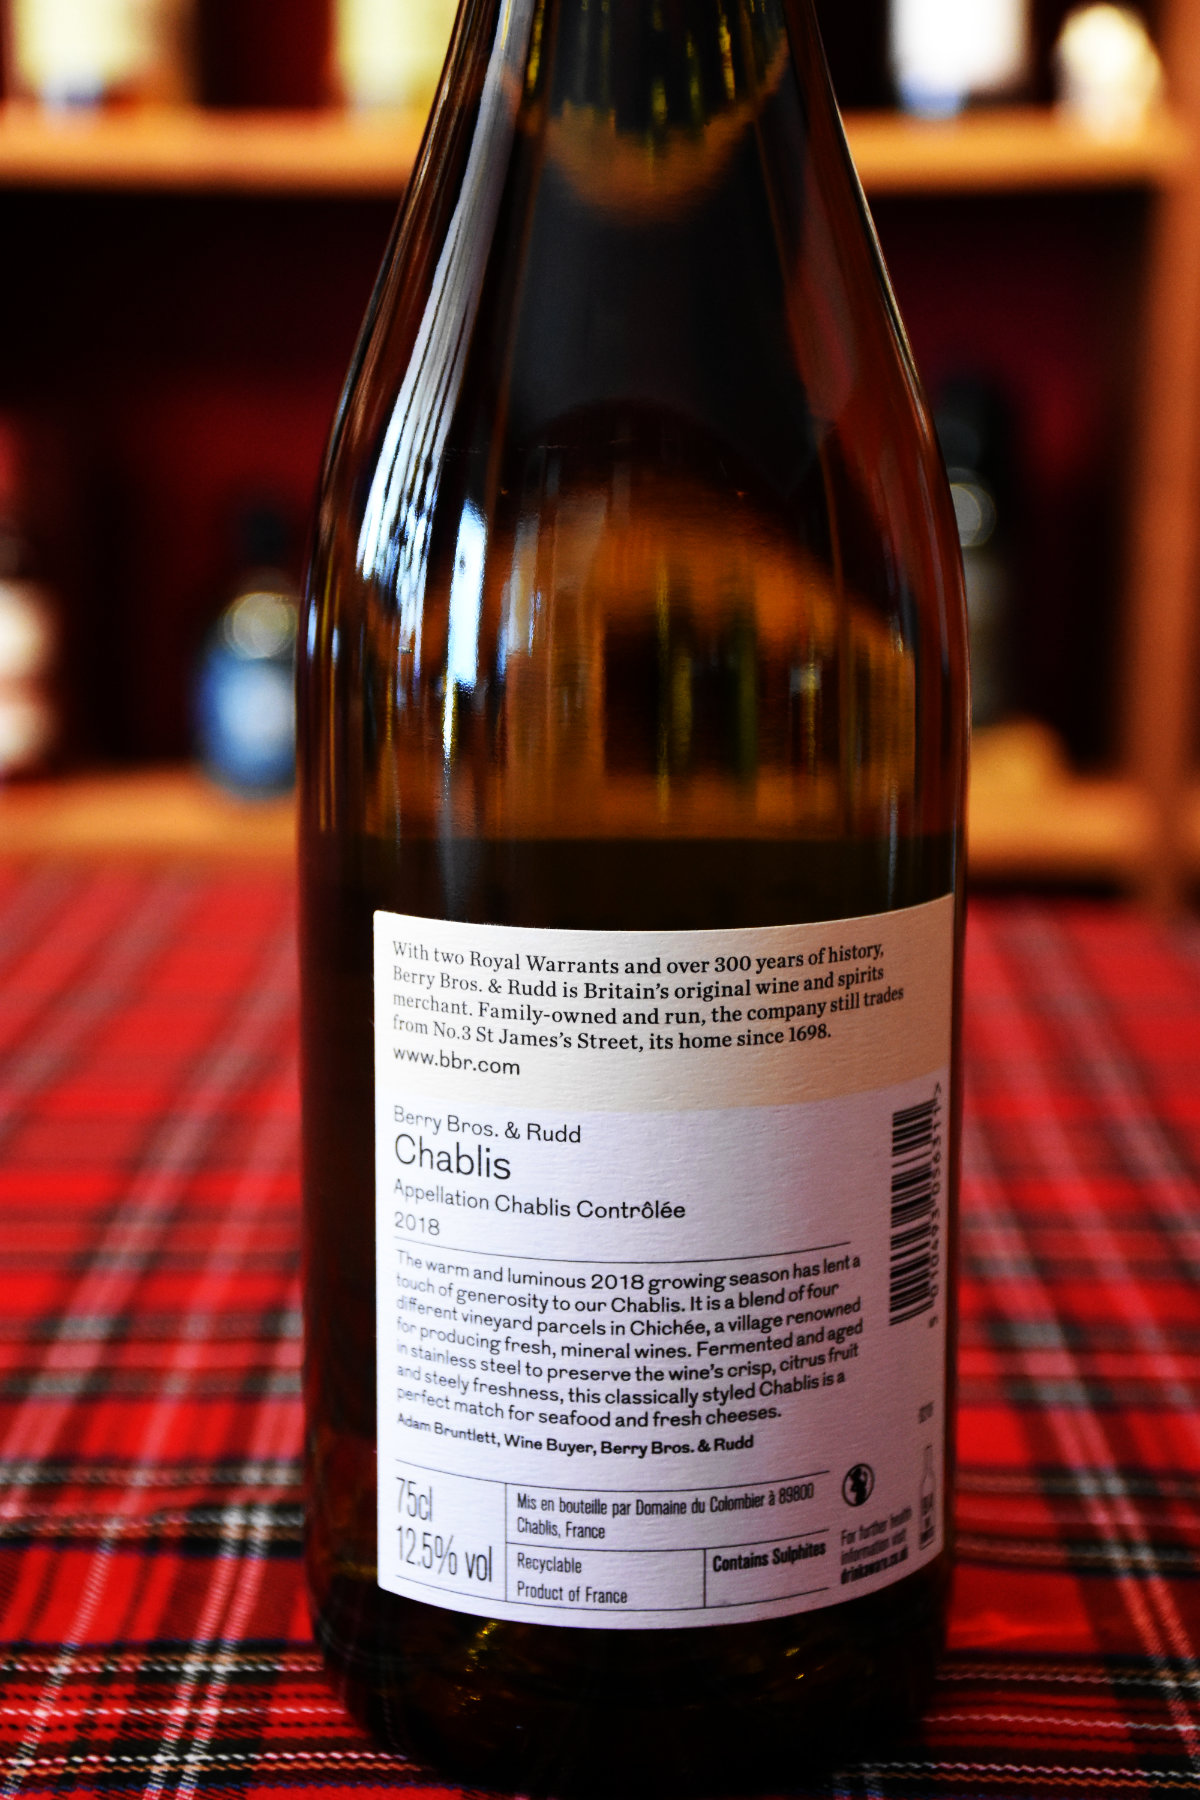 Berry Bros. & Rudd Chablis by Domaine de Colombier, 2018, 12, 5 %